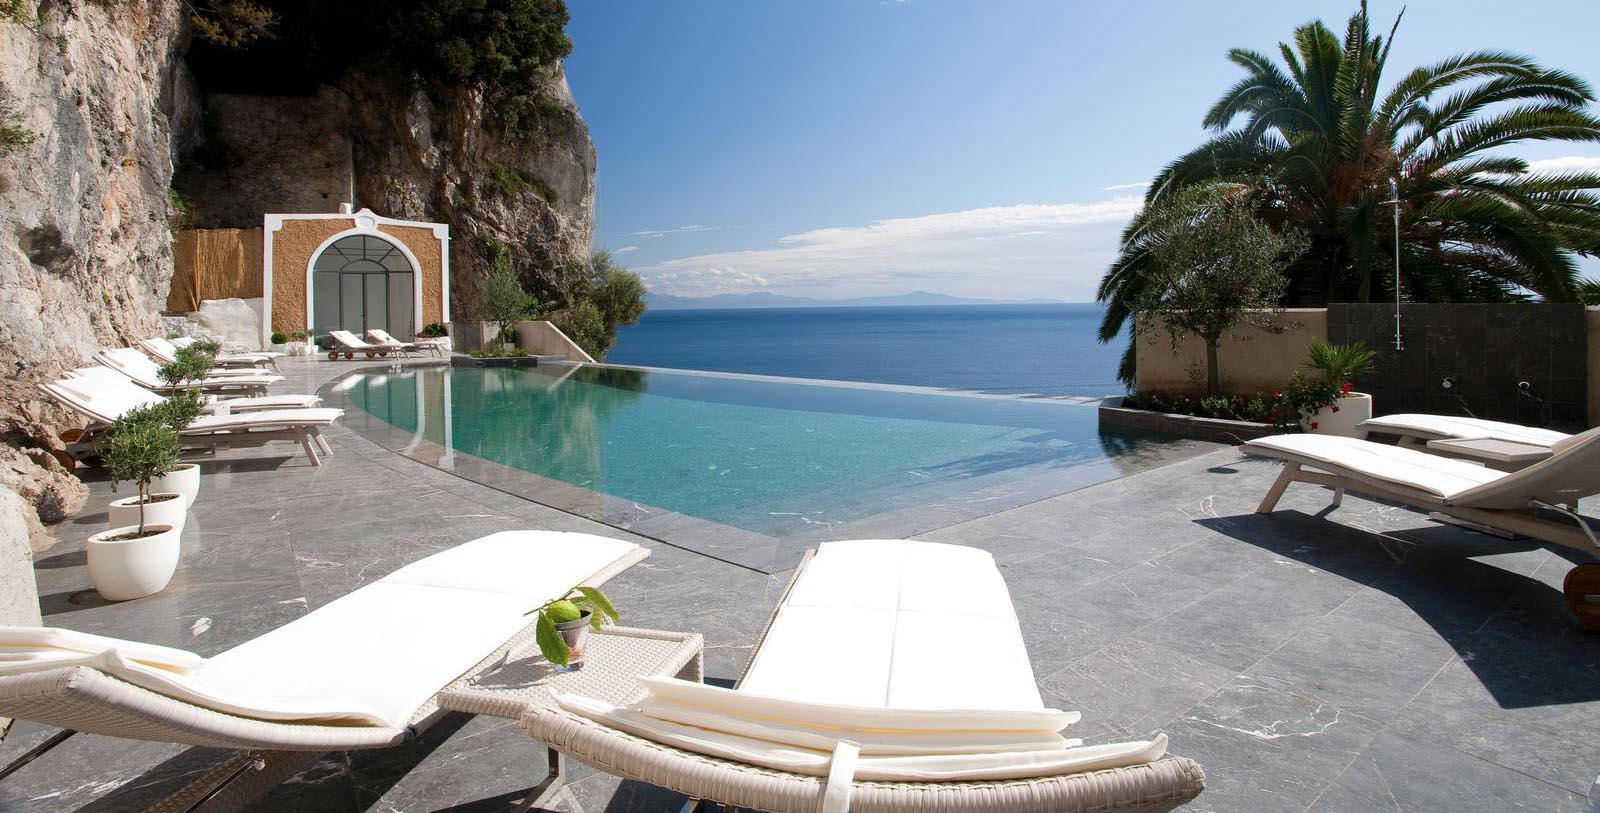 Image of Pool NH Collection Grand Hotel Convento di Amalfi, 1212 Member of Historic Hotels Worldwide, in Amalfi, Italy, Explore